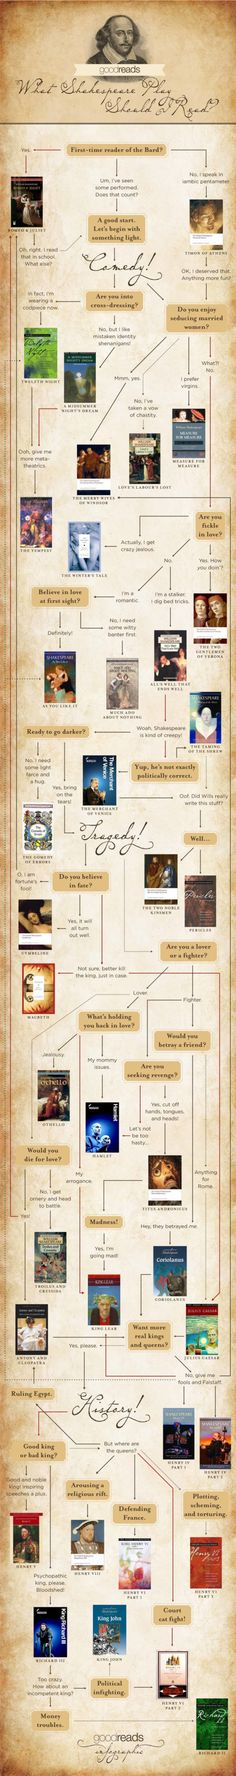 This chart will help you choose the next #Shakespeare play to read